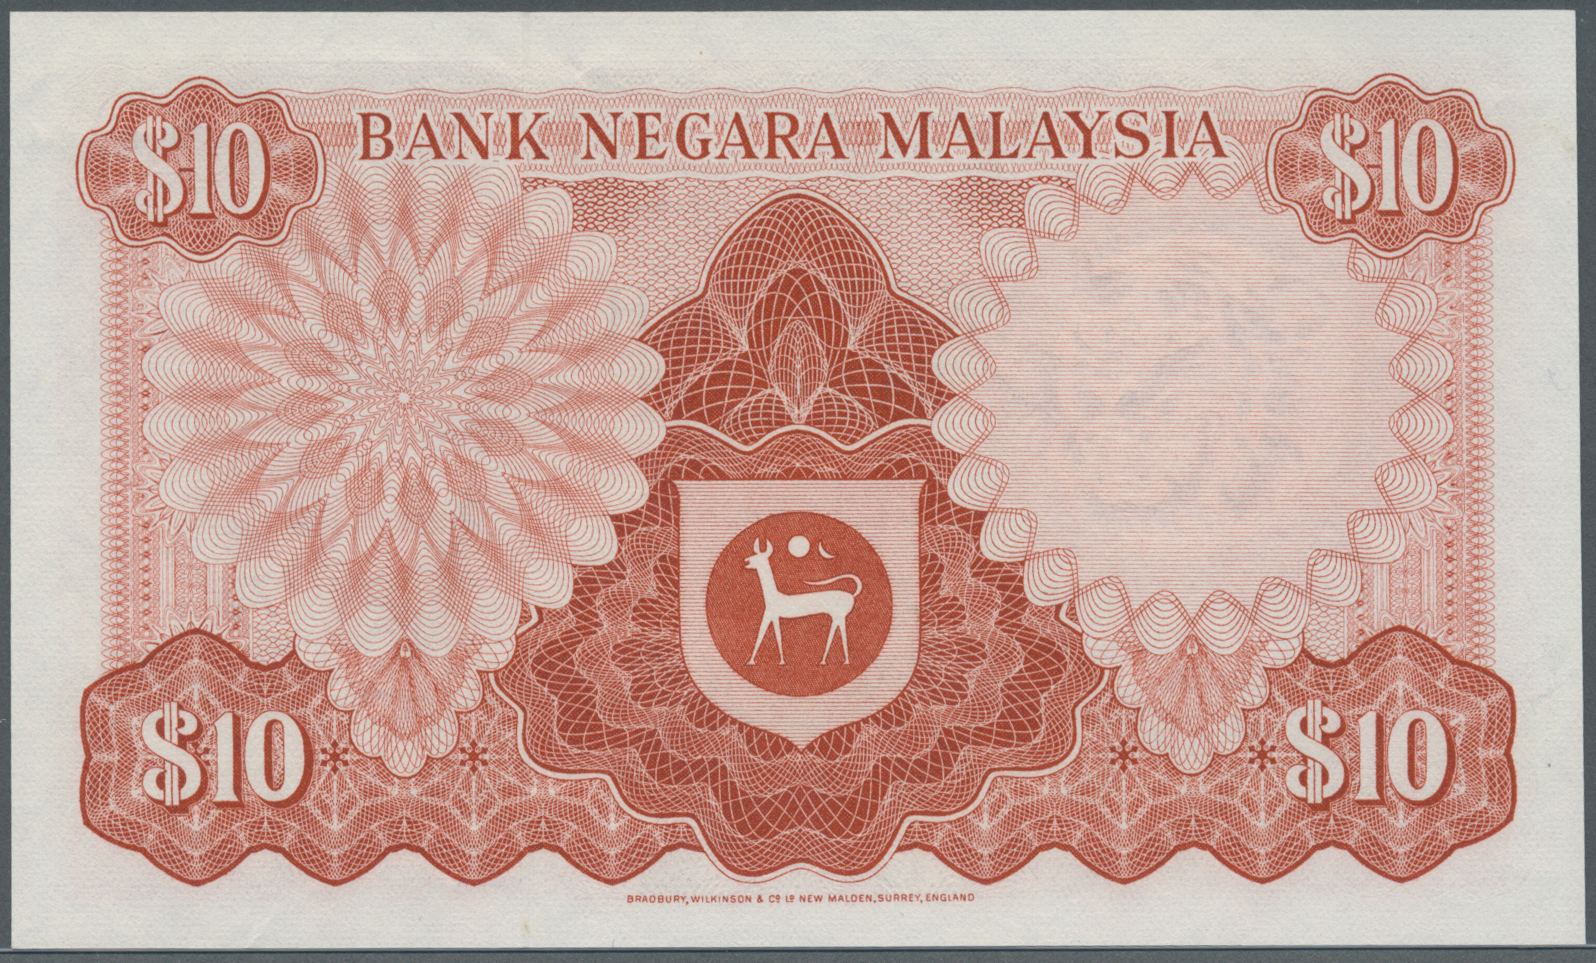 Lot 2334 - Malaysia | Banknoten  -  Auktionshaus Christoph Gärtner GmbH & Co. KG Banknotes & Coins Auction #39 Day 2